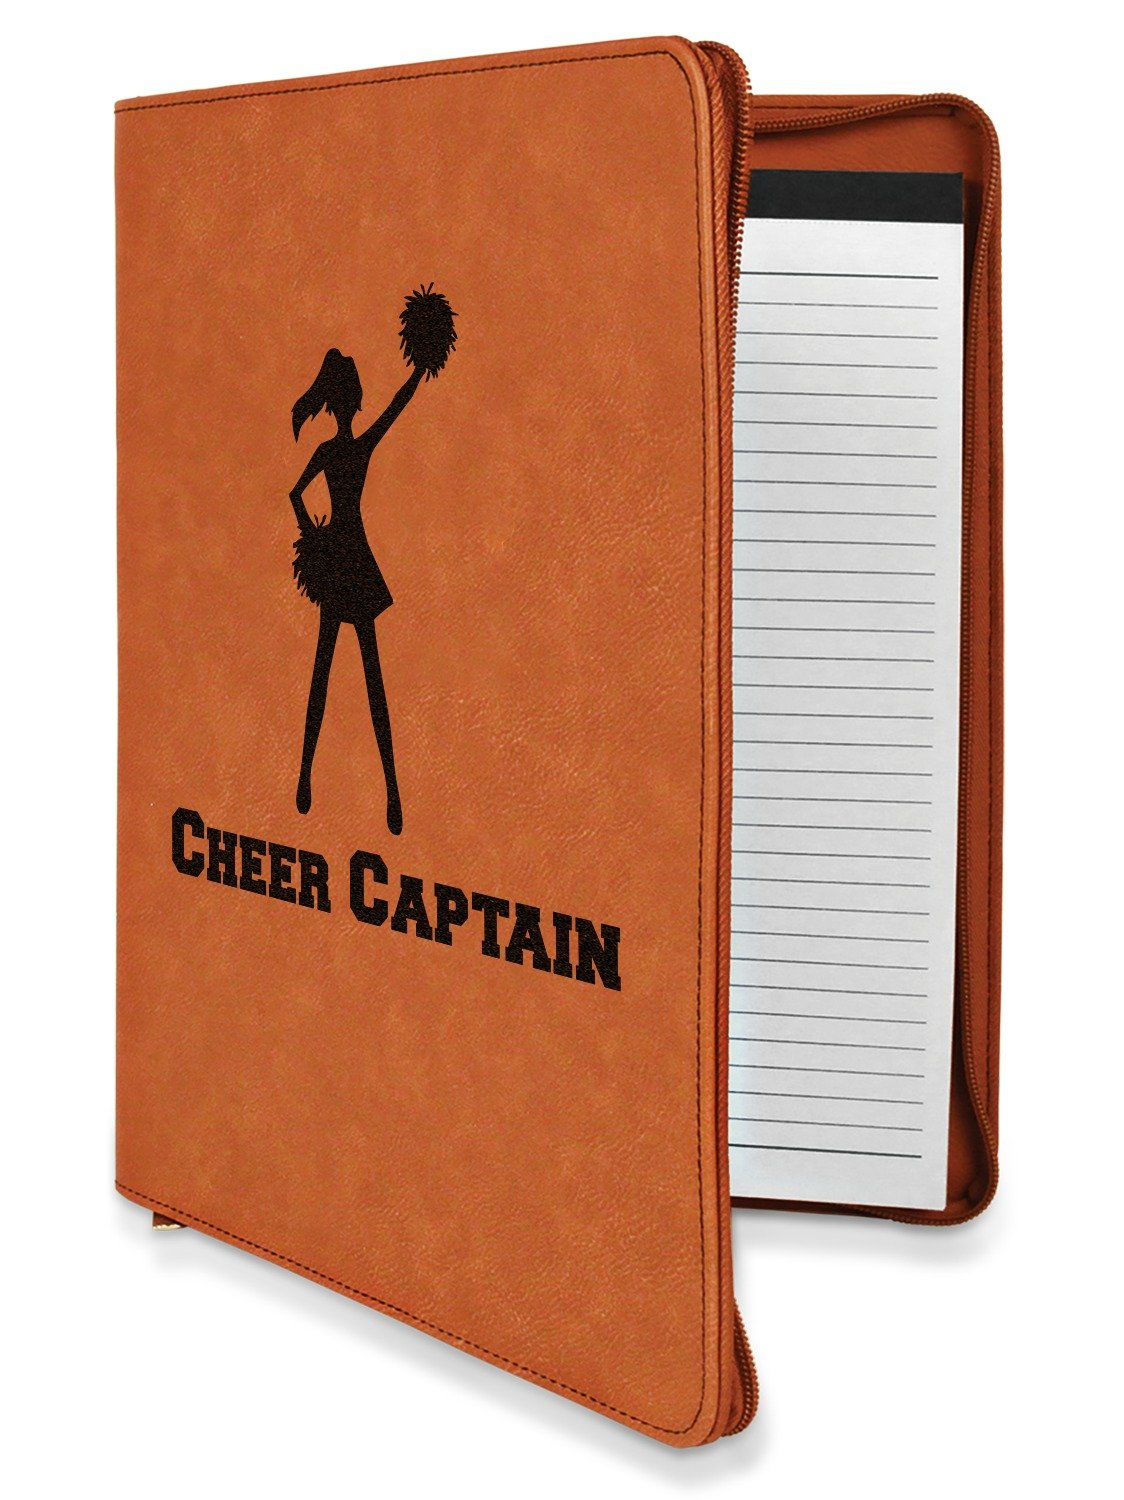 Cheerleader Leatherette Zipper Portfolio with Notepad - Double Sided (Personalized)